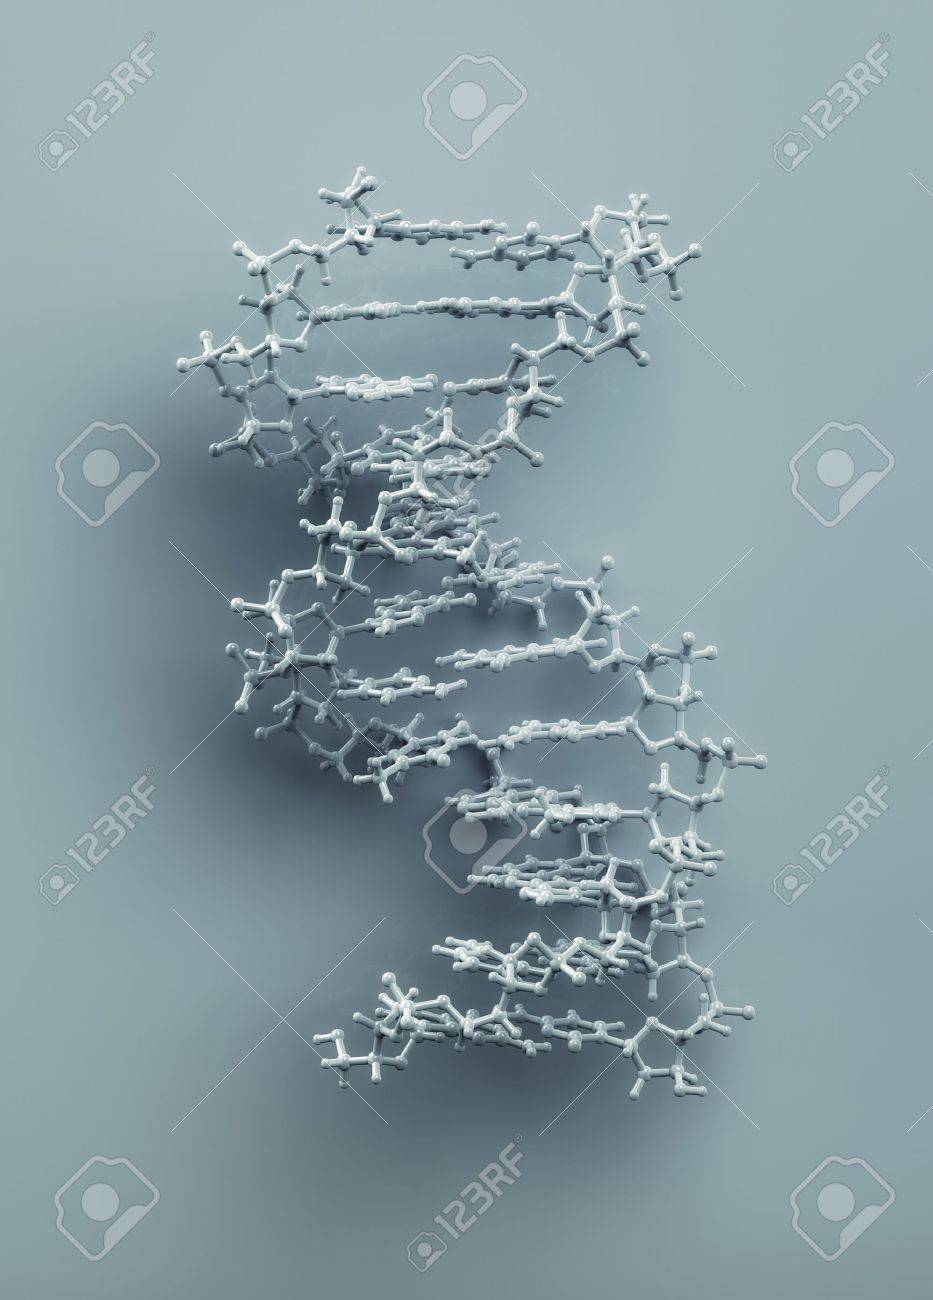 DNA structure molecule 3D rendering. Exact representation of DNA from protein data bank. - 8968146